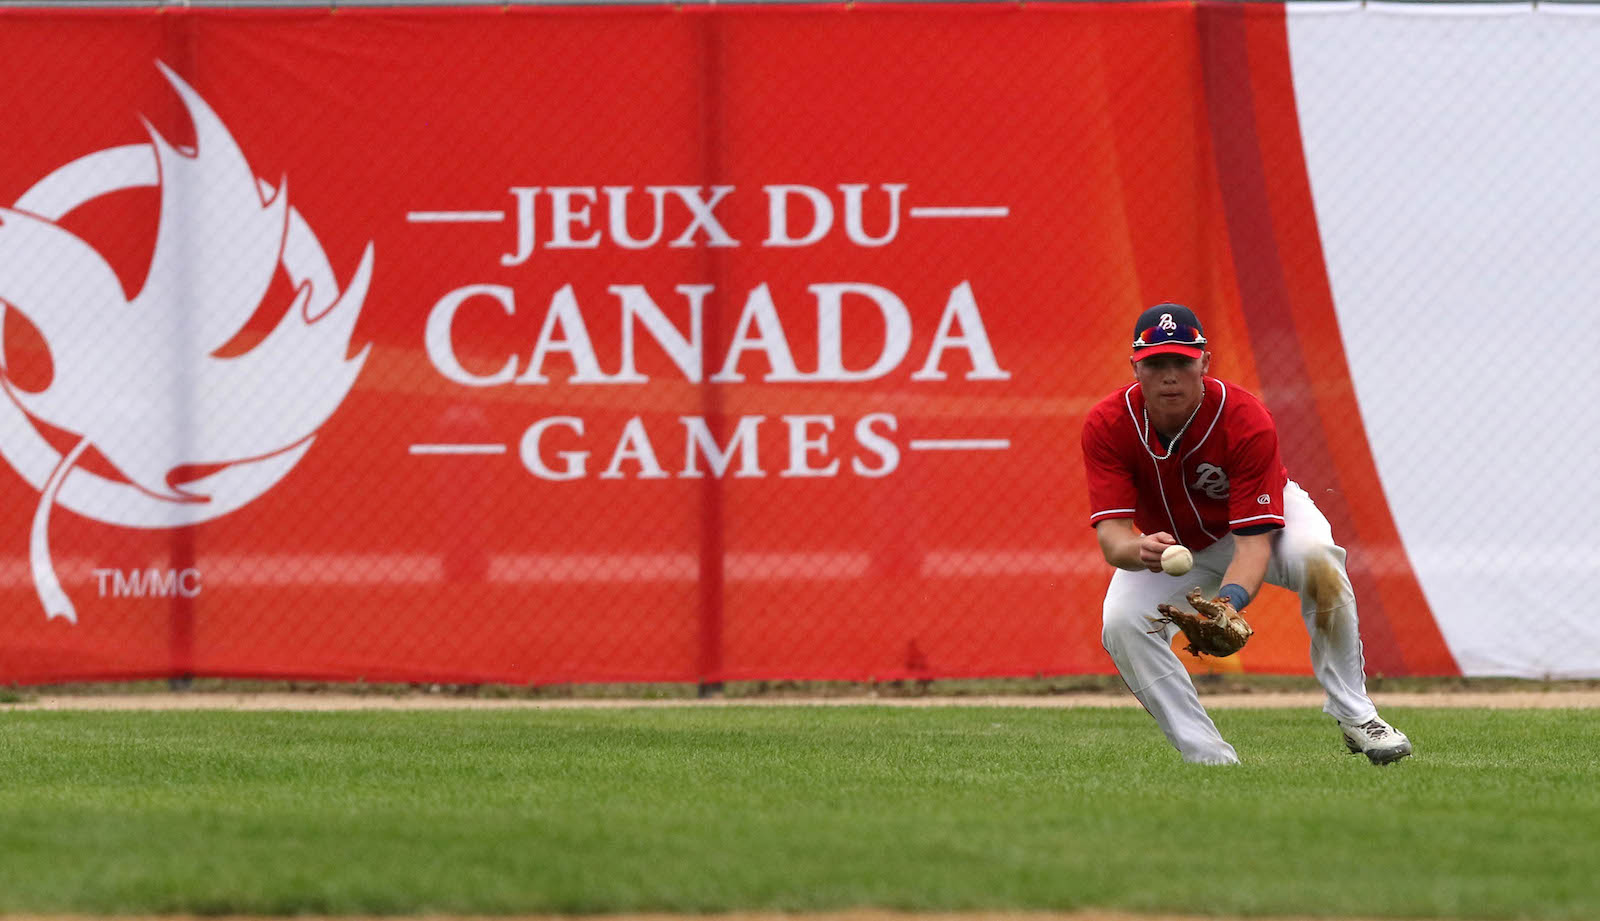 Canada Games Baseball: Day 2 Recap